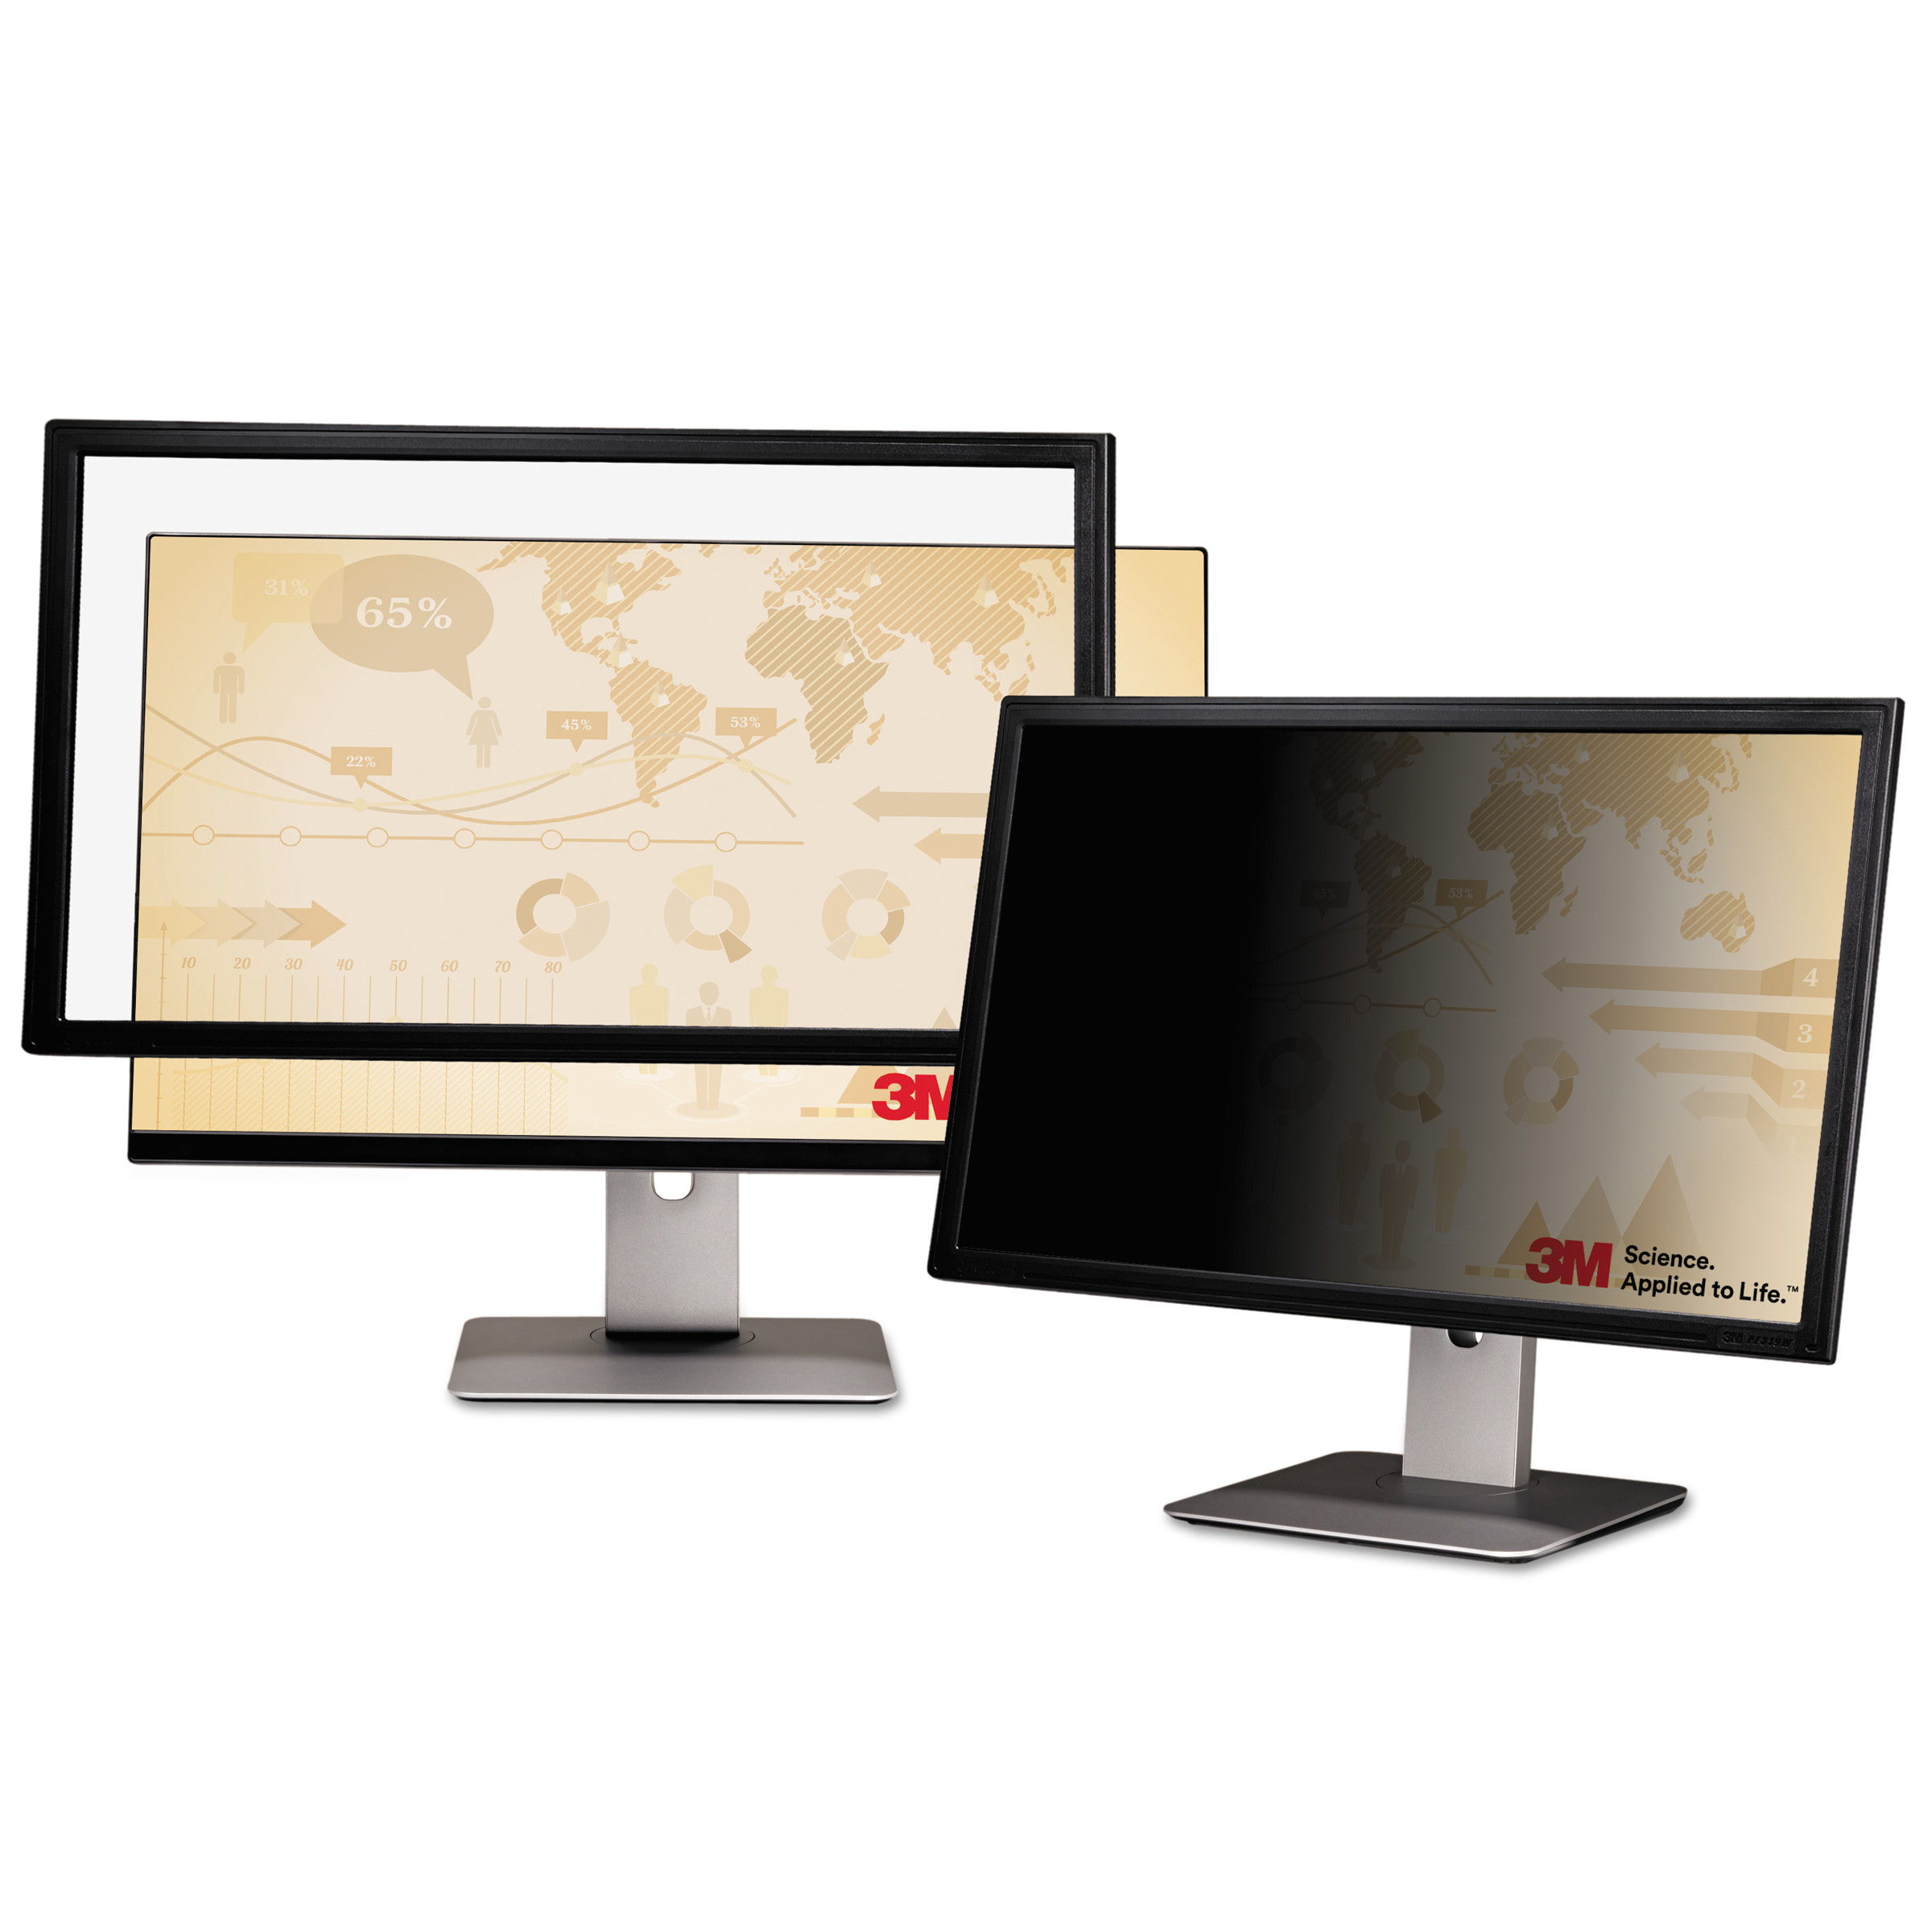 "3M Blackout Frameless Privacy Filter for 24"" Widescreen Notebook/LCD, 16:9"